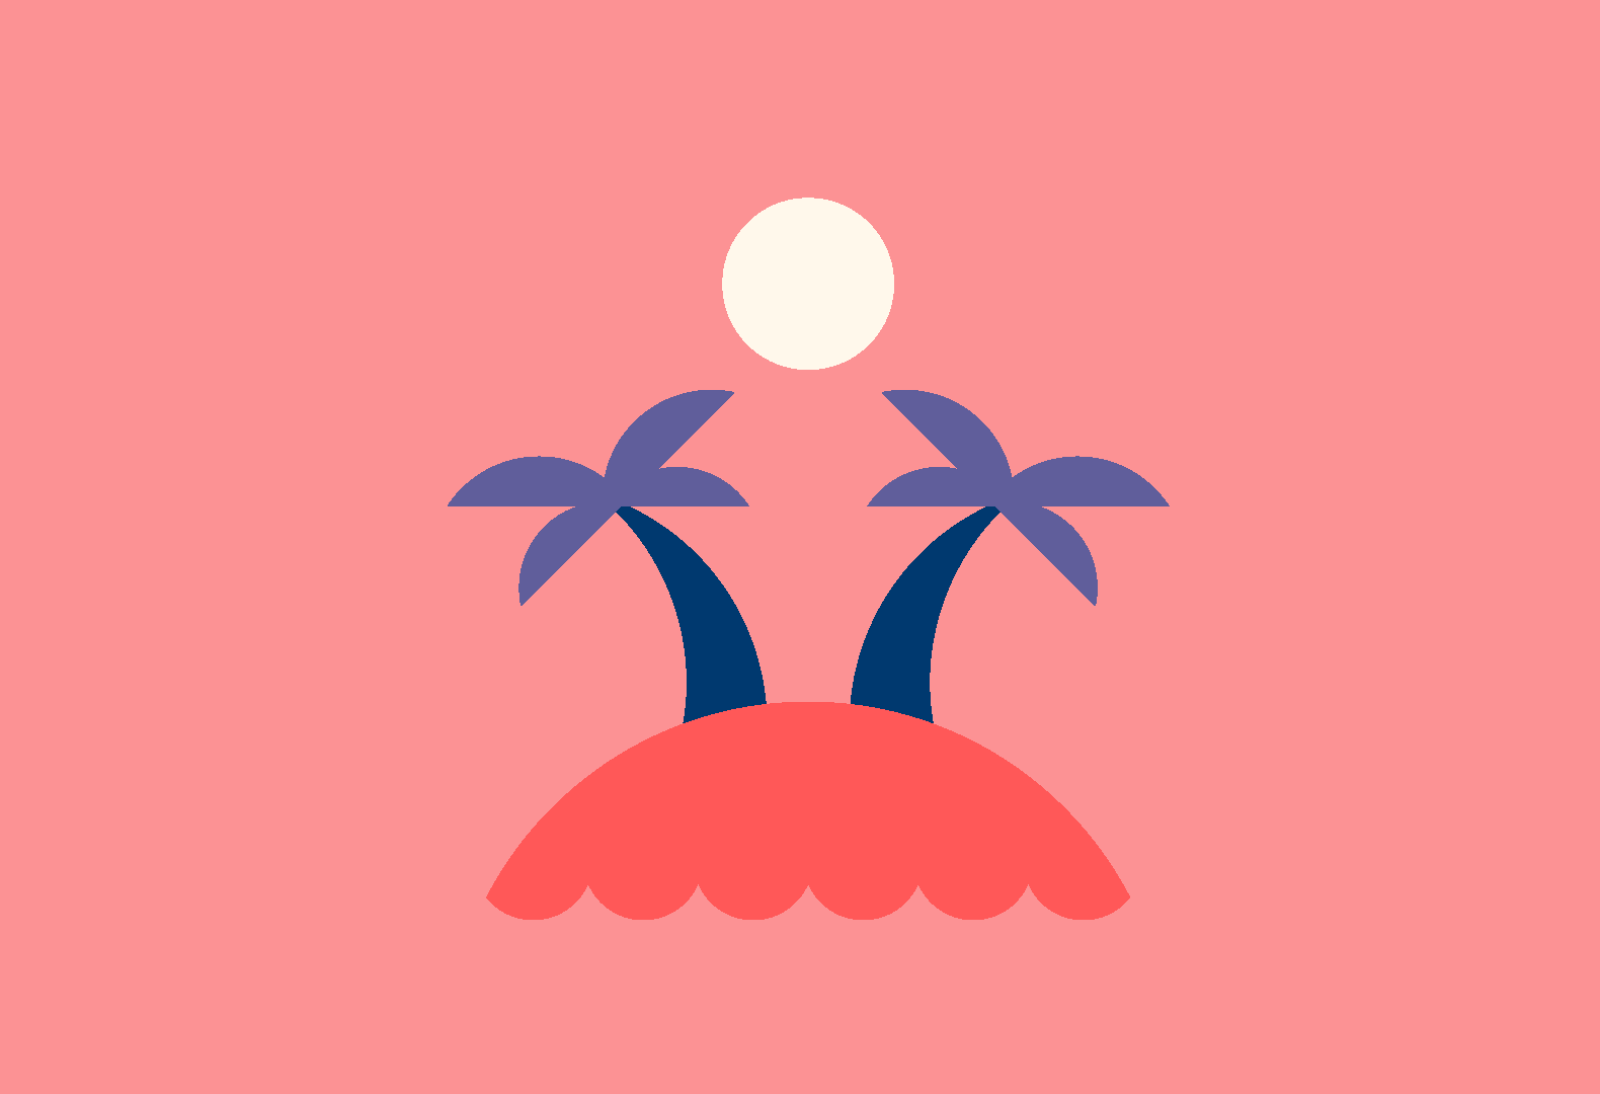 Illustrated trees, used as inspiration in the Fabled digital product.